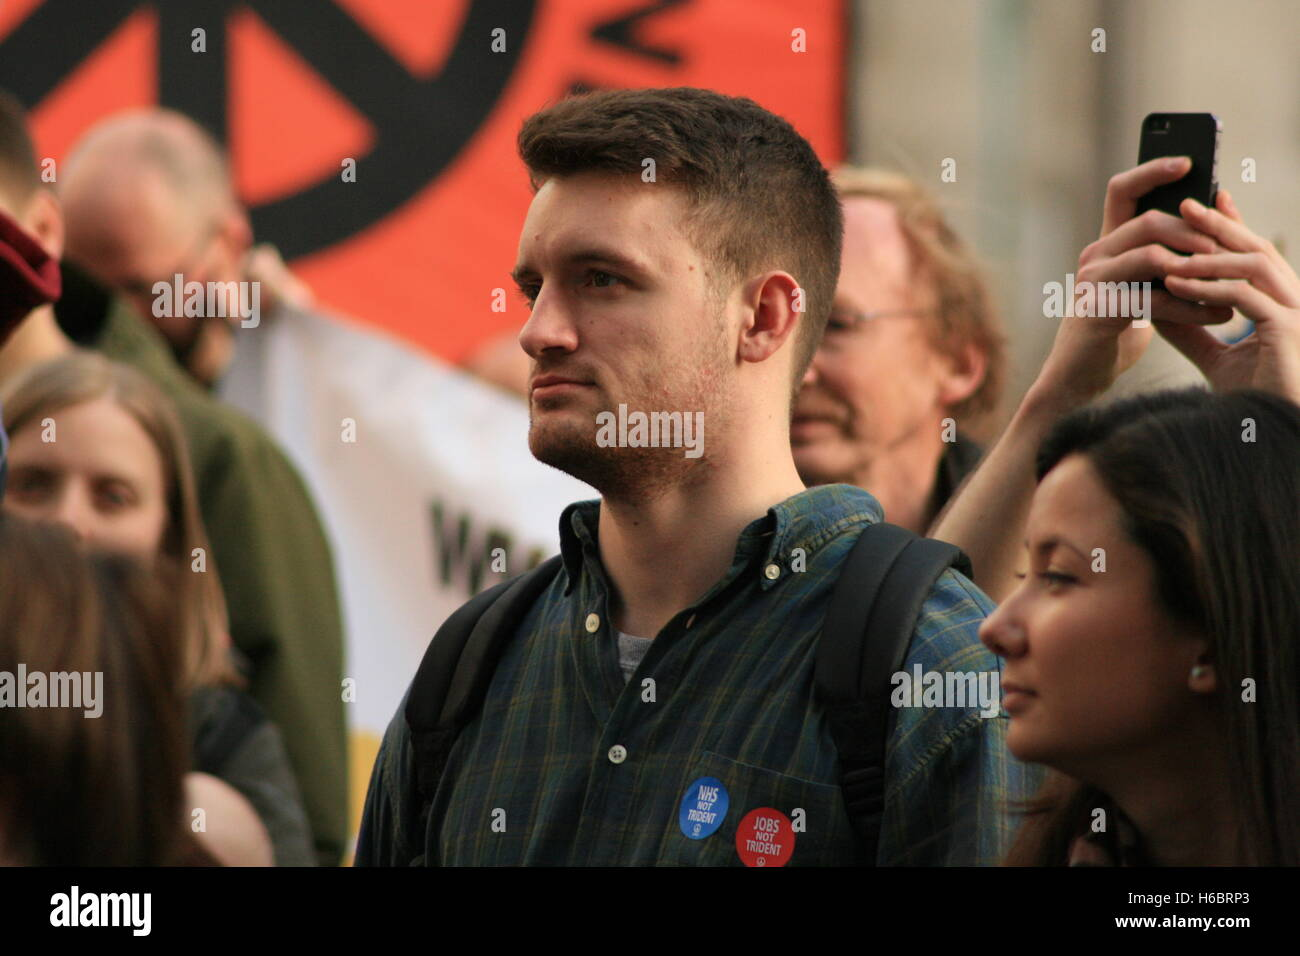 A protester against the renewal of the UK's nuclear weapons system Trident, listens to music and speeches at - Stock Image